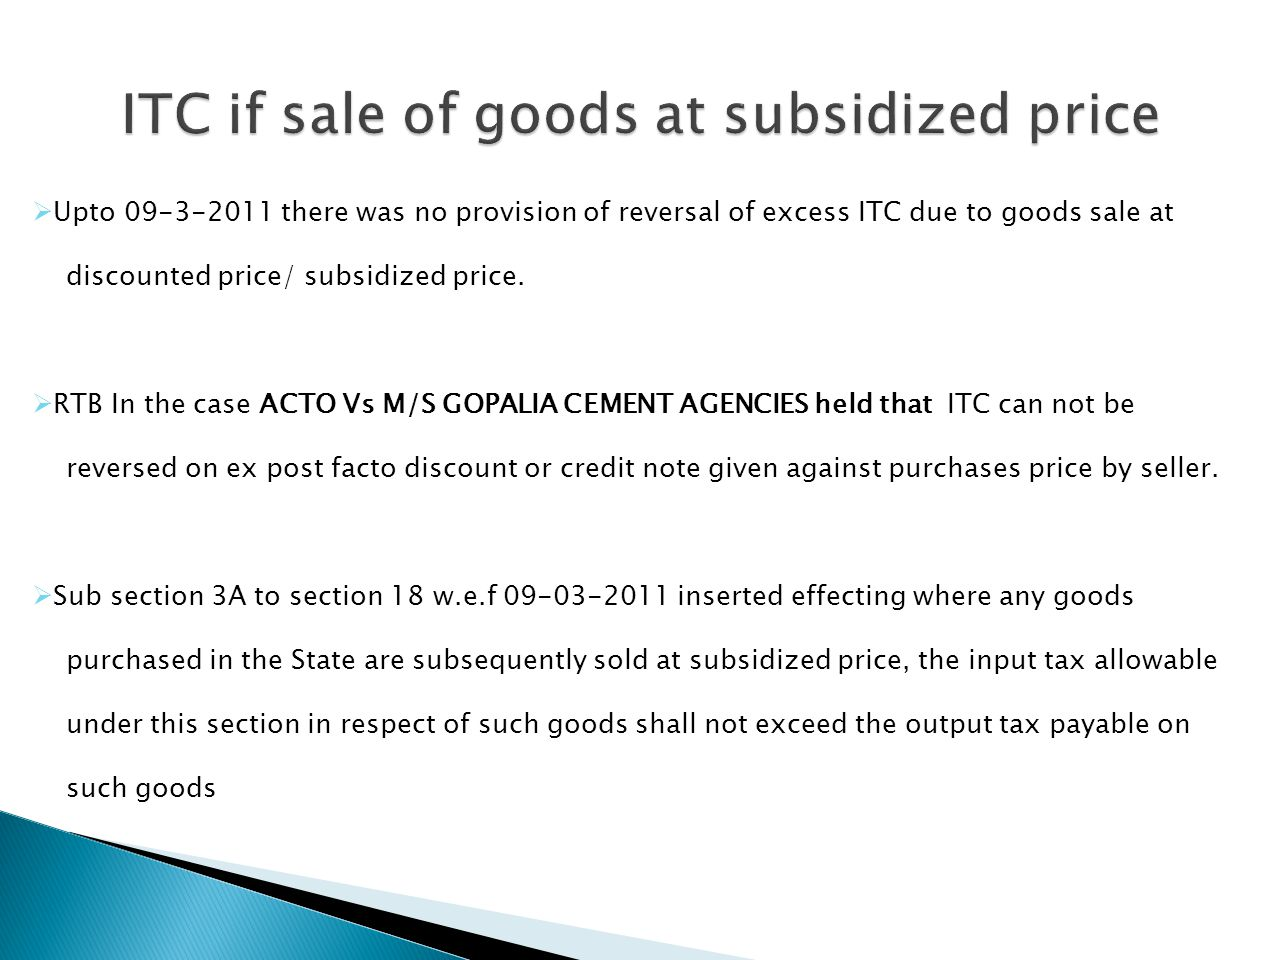 ITC if sale of goods at subsidized price Upto 09-3-2011 there was no provision of reversal of excess ITC due to goods sale at discounted price/ subsid